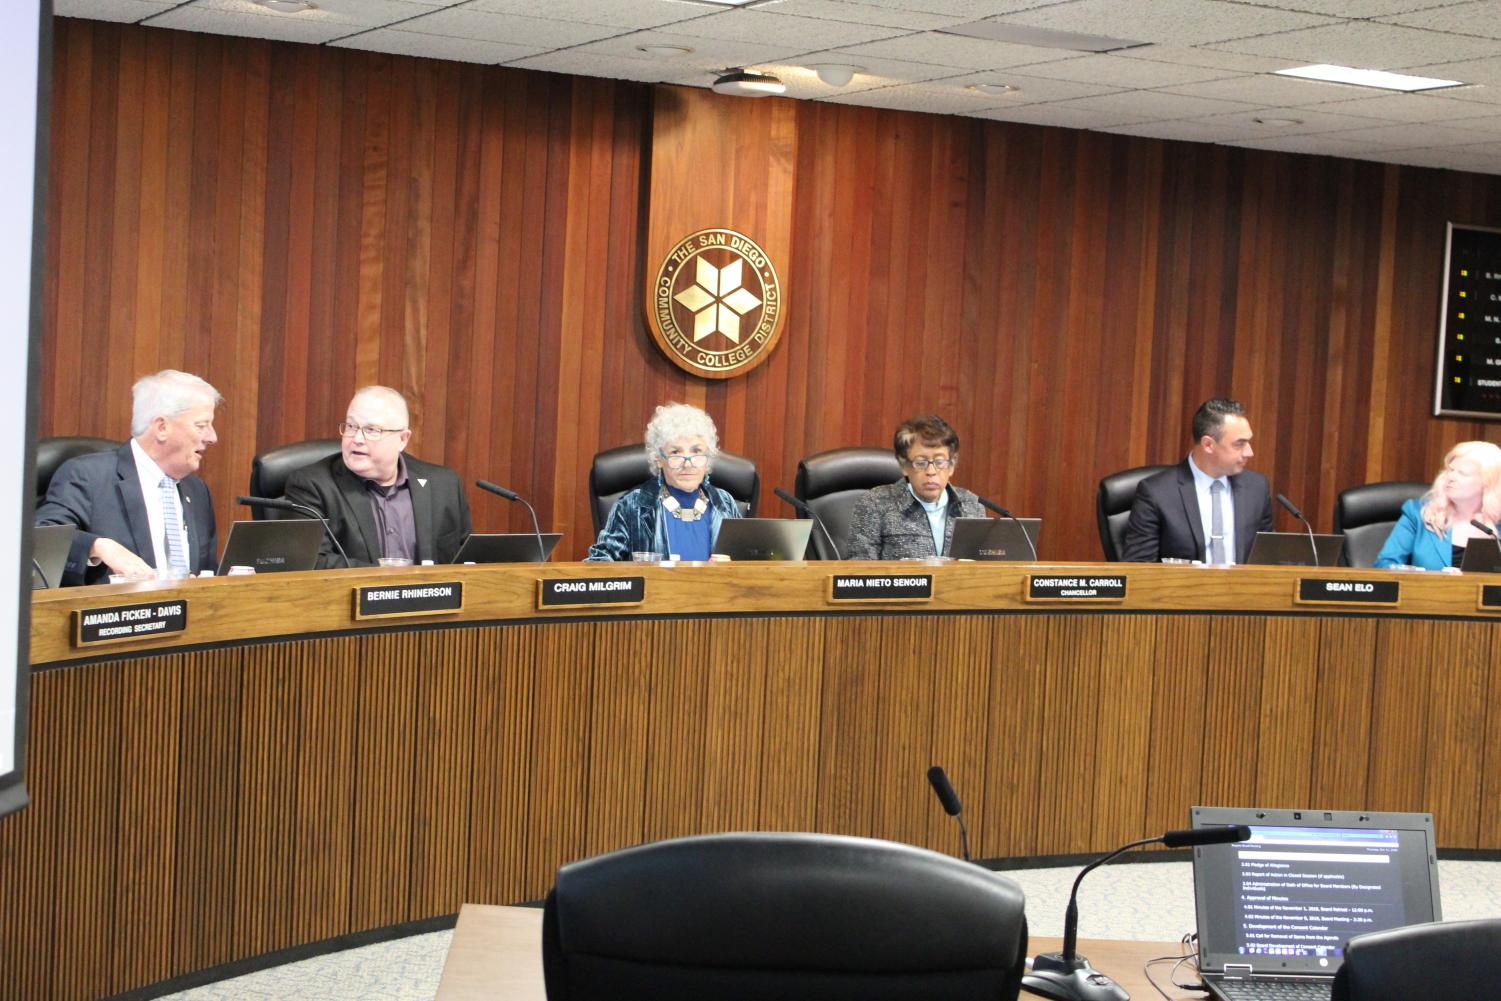 The SDCCD board of trustees held its final meeting of the year in which it swore in two new members. By Jonny Rico